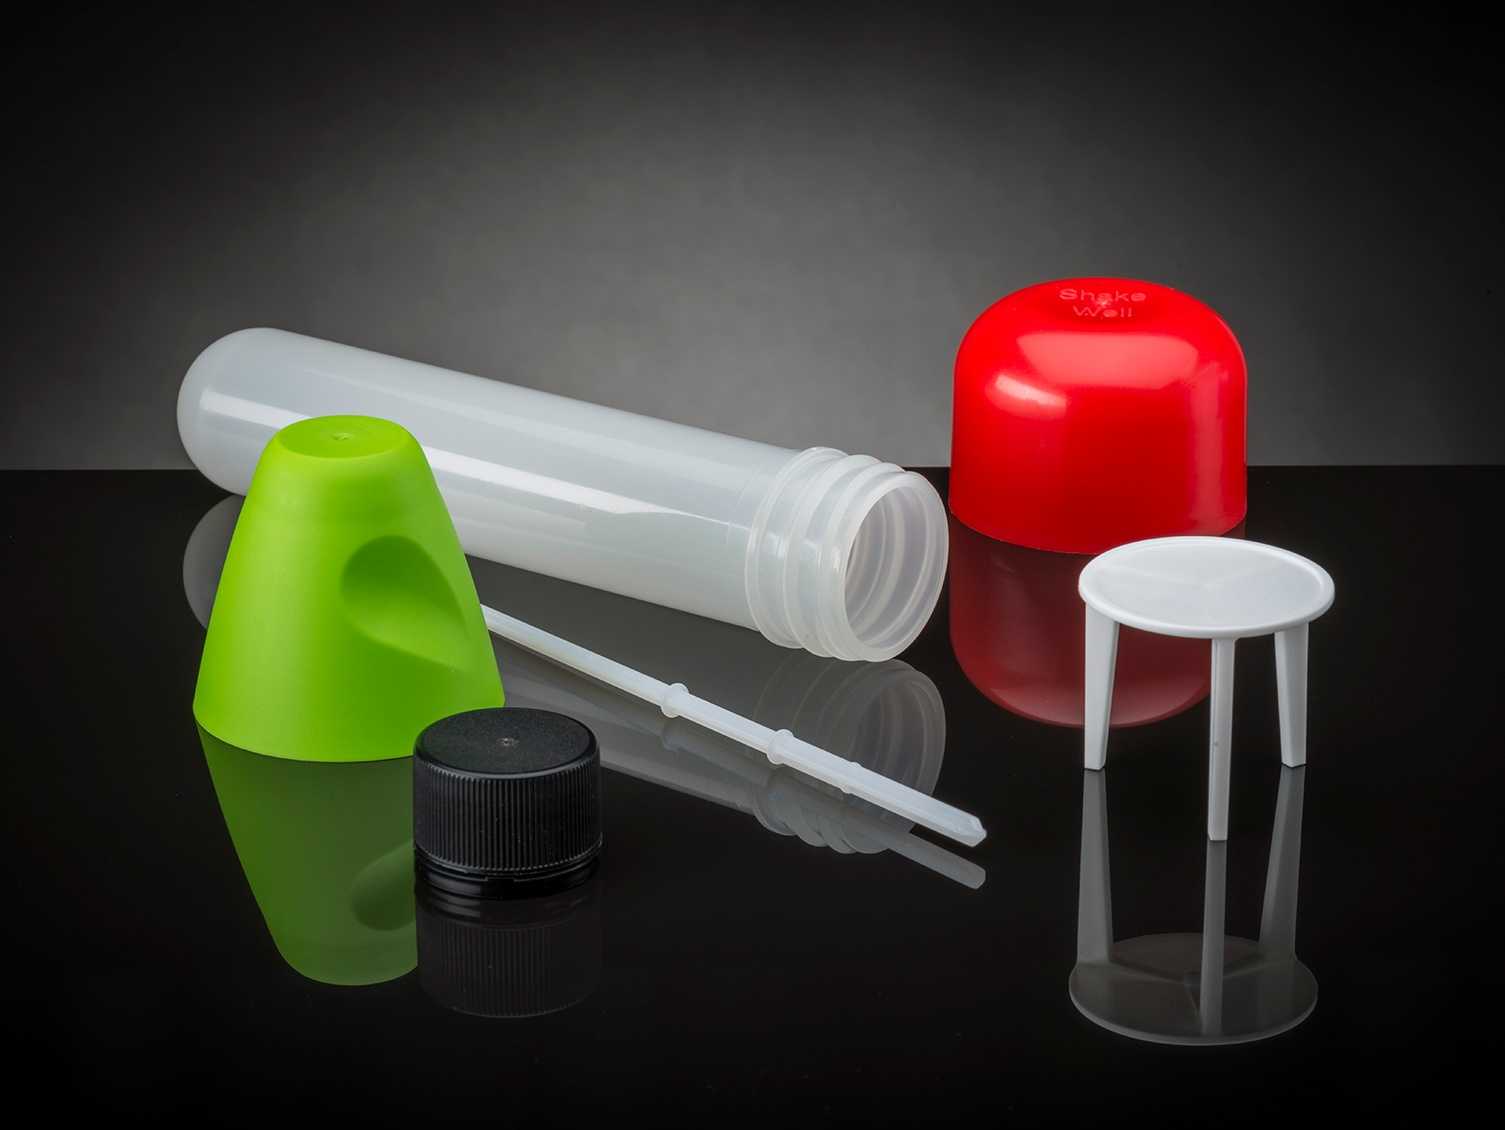 Food and beverage components